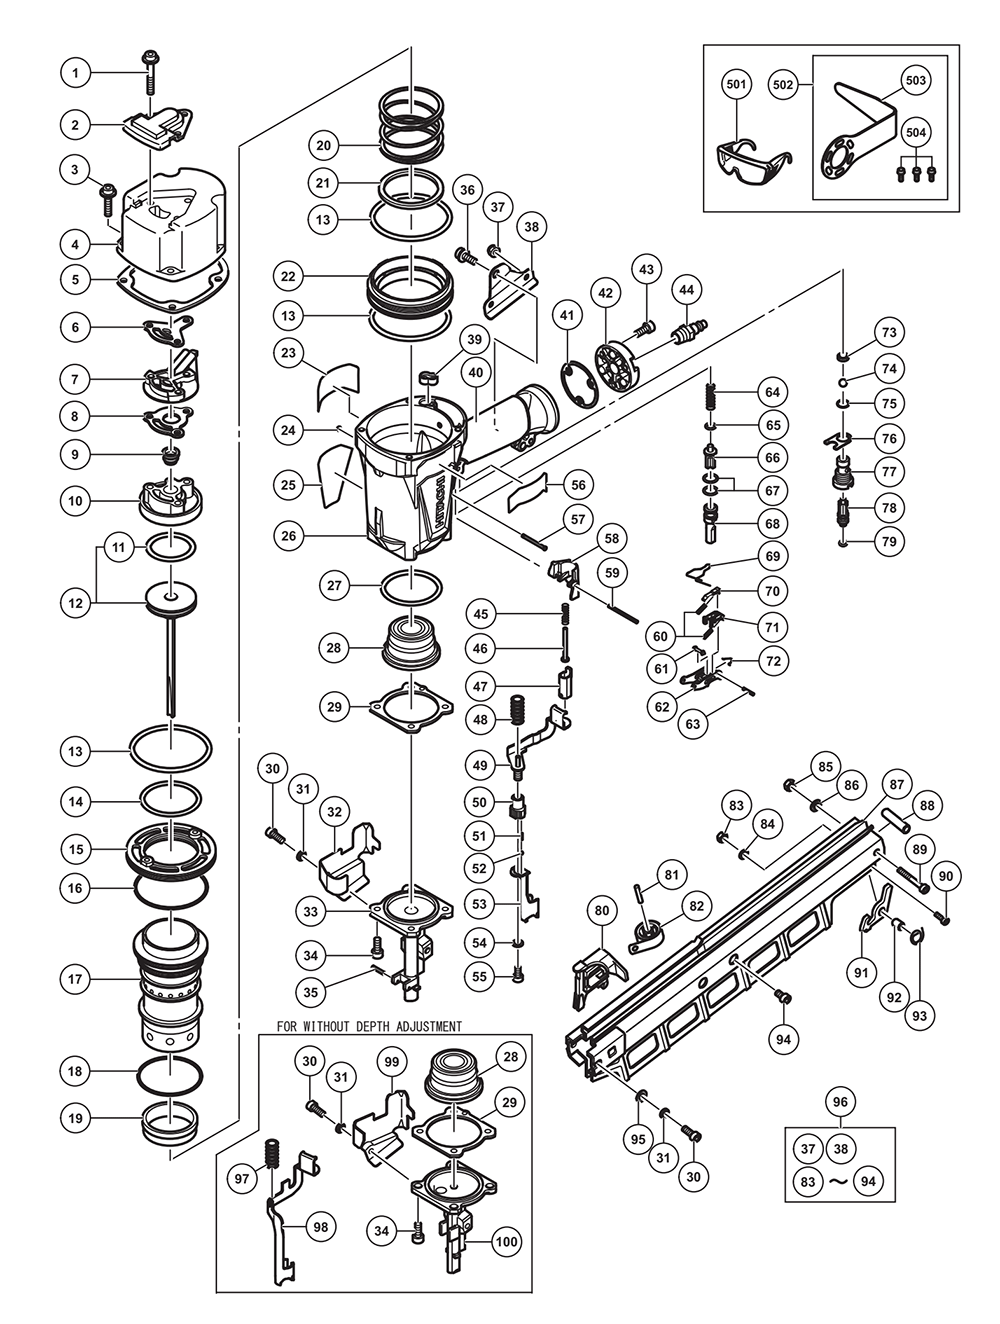 medium resolution of hitachi nr83a5 s parts schematic